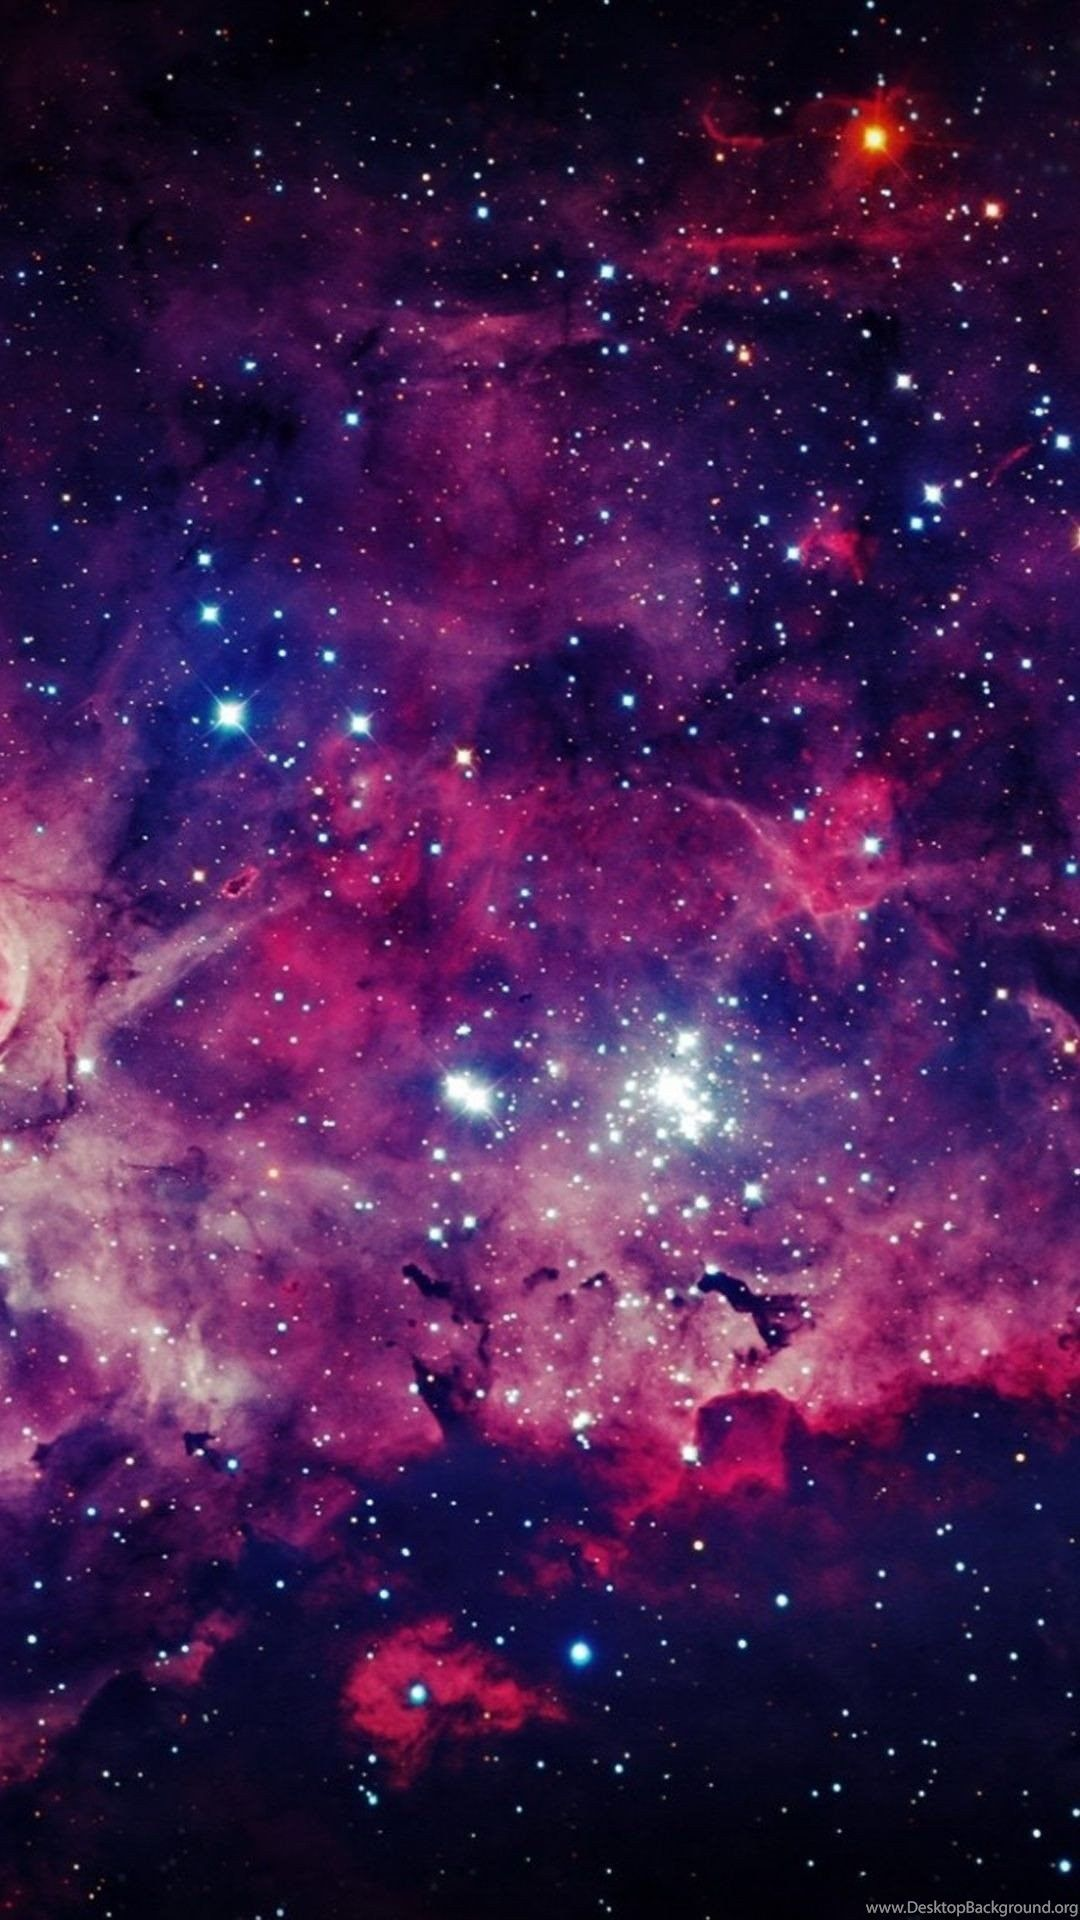 75 Colorful Galaxy Android Iphone Desktop Hd Backgrounds Wallpapers 1080p 4k 1080x1920 2020